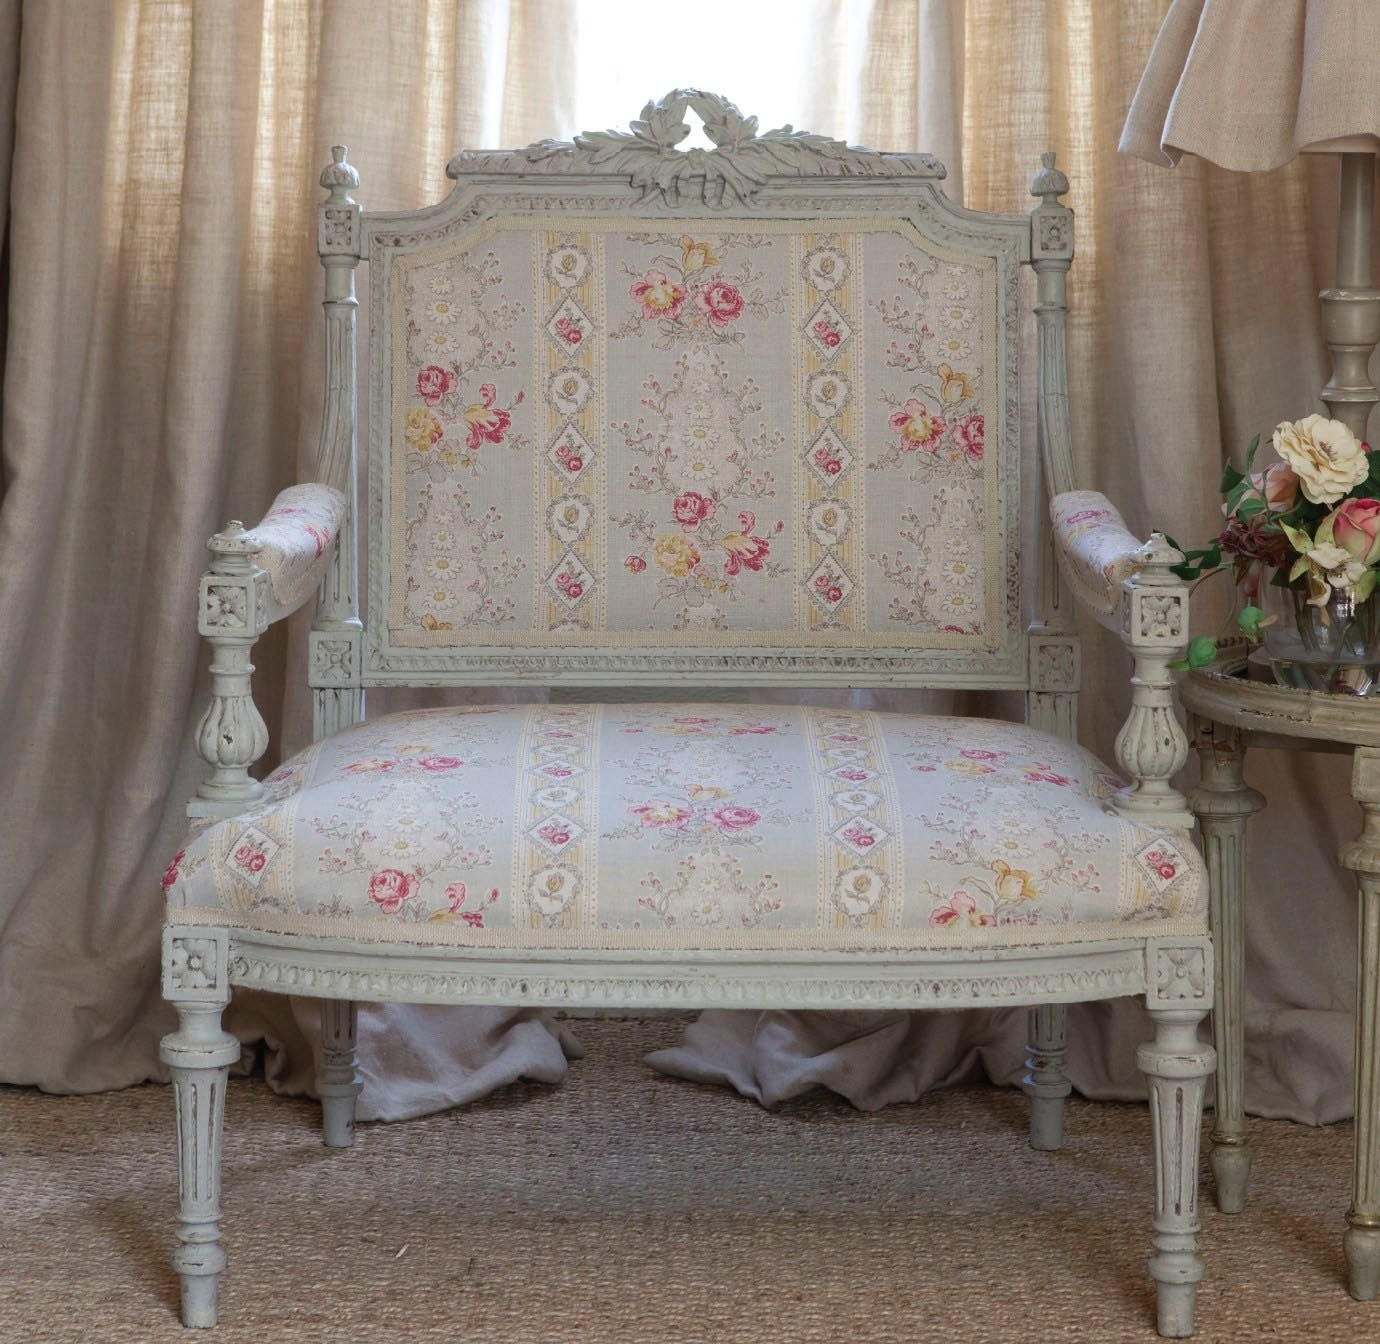 12061 Jpg 1 380 1 344 Pixels Antique French Chairs Beautiful Chair Shabby Chic